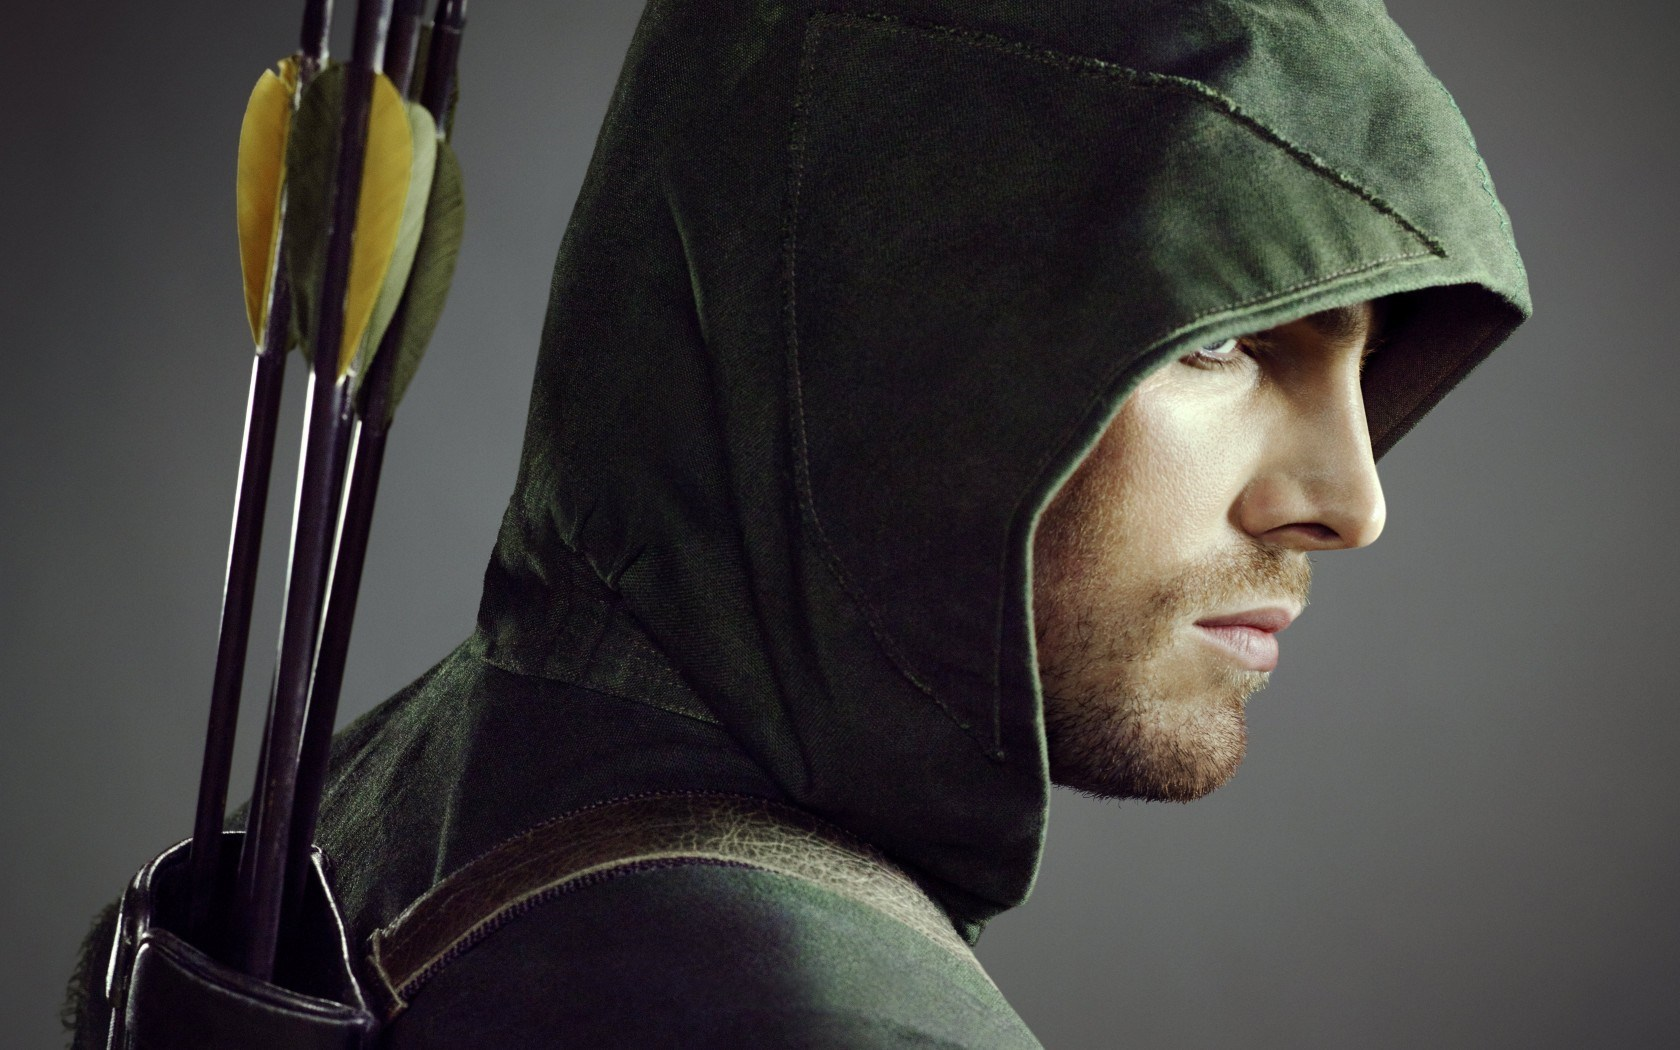 Stephen Amell Actor Arrow Oliver Queen